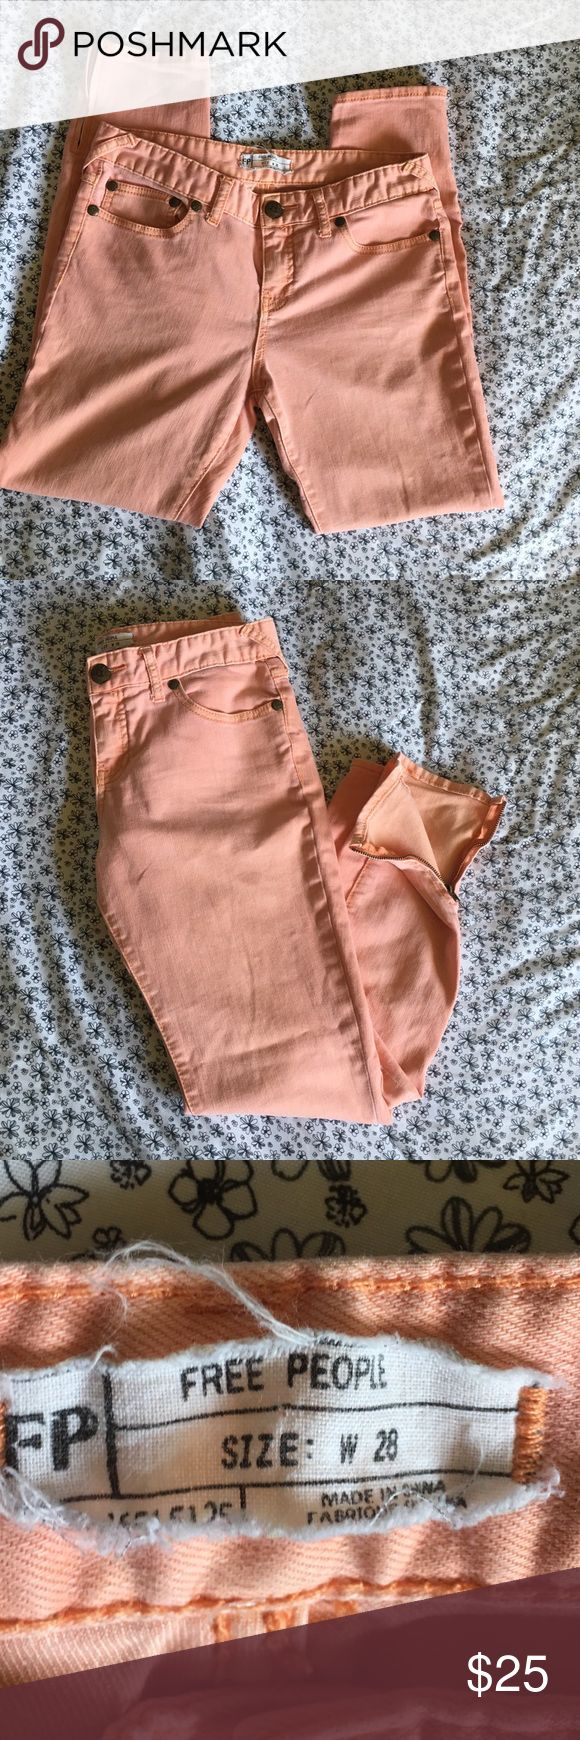 """🆕Free People peach skinny jeans Peach colored Free People skinny jeans. Item is previously loved and in good condition. If you have any questions leave them below. Measurements: Waist 28""""-30"""", Hips 32"""", Inseam 26 1/2"""", Outerseam 34"""" and Leg Opening 10"""" with adjustable zipper Free People Jeans Skinny"""